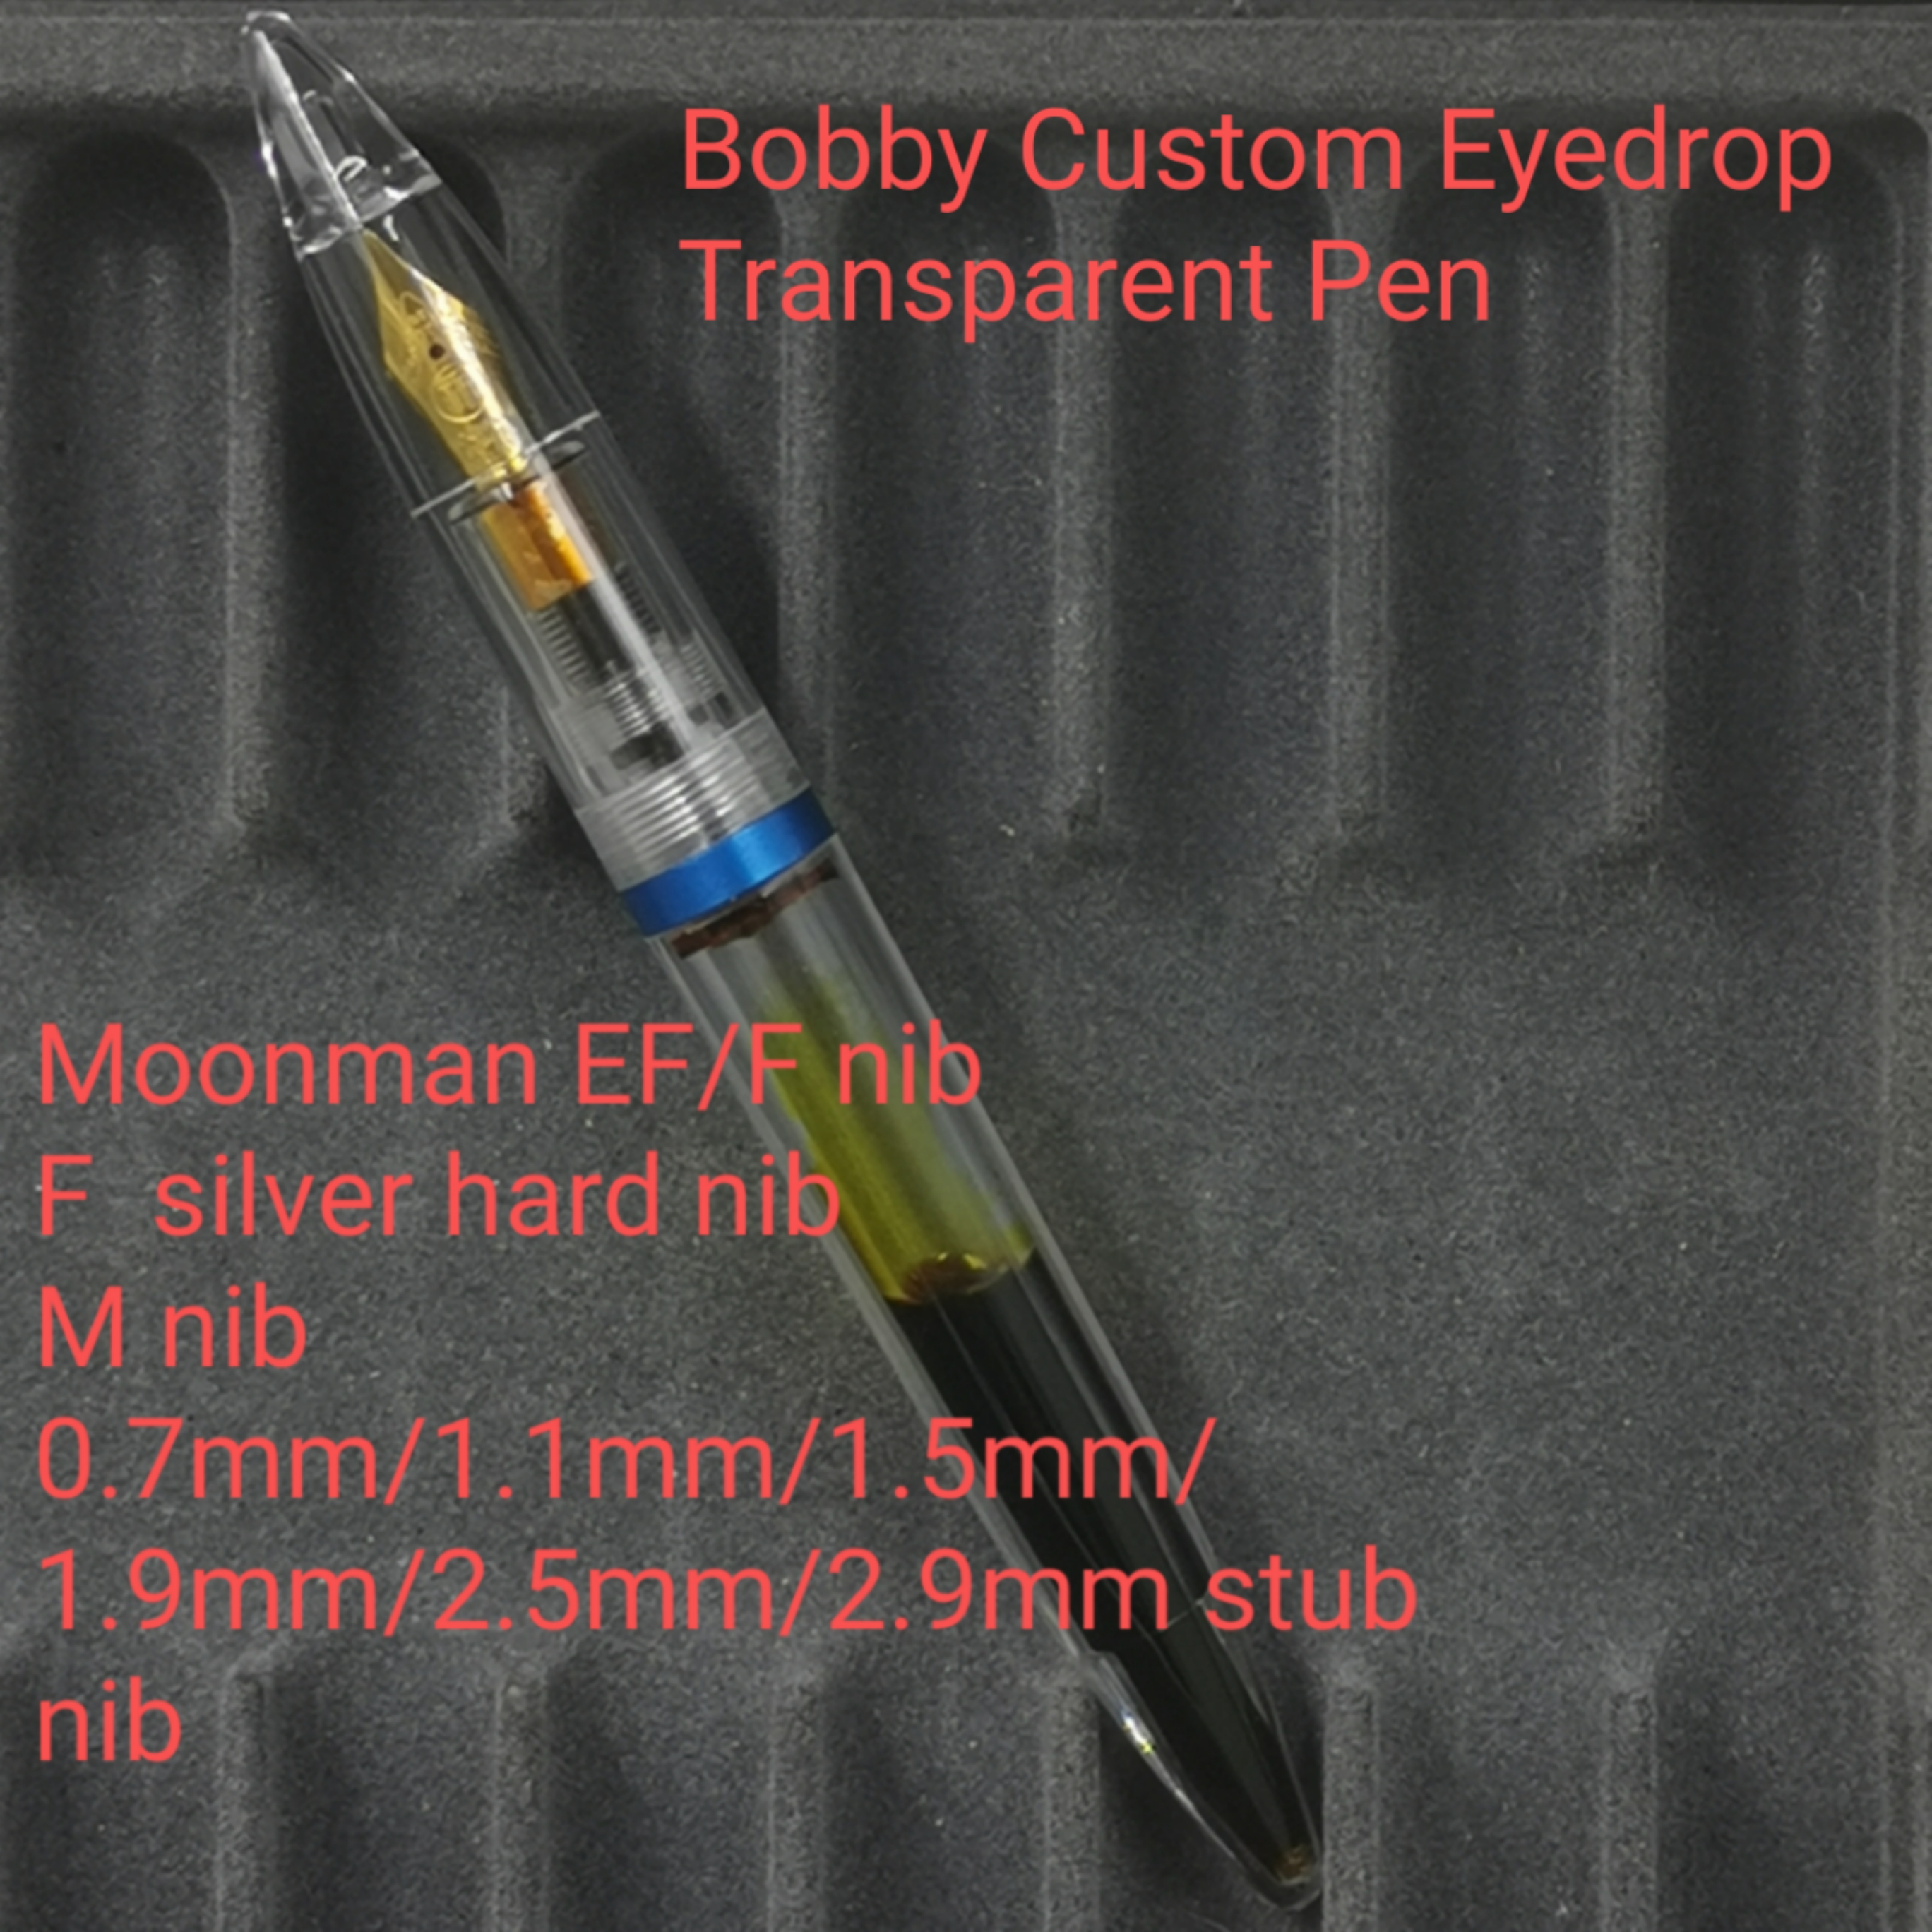 1Pc Bobby Custom Clear Fountain Pen With Moonman EF/F/M/0.7mm/1.1mm/1.5mm/1.9mm/2.5mm/2.9mm Stationery Office School Supplies